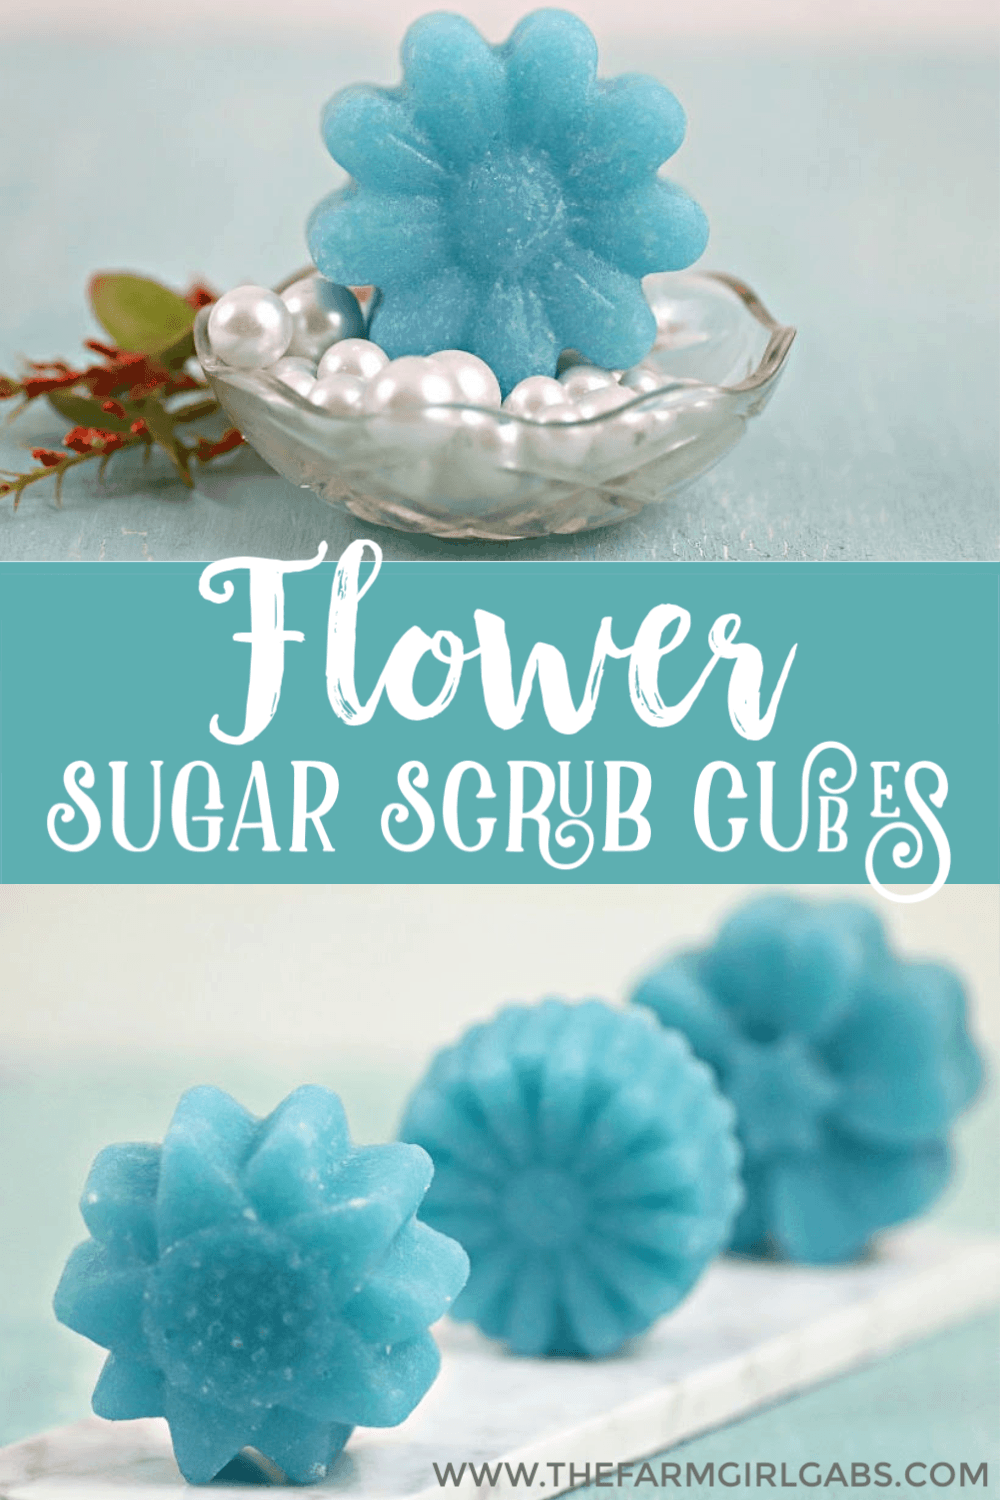 It's a self-care kind of day. Pamper yourself and whip up a batch of these DIY Flower Sugar Scrub Cubes made with Essential Oils. Keep them for yourself of give the gift of pampering. #essentialoils #sugarscrub #sugarscrubcubes